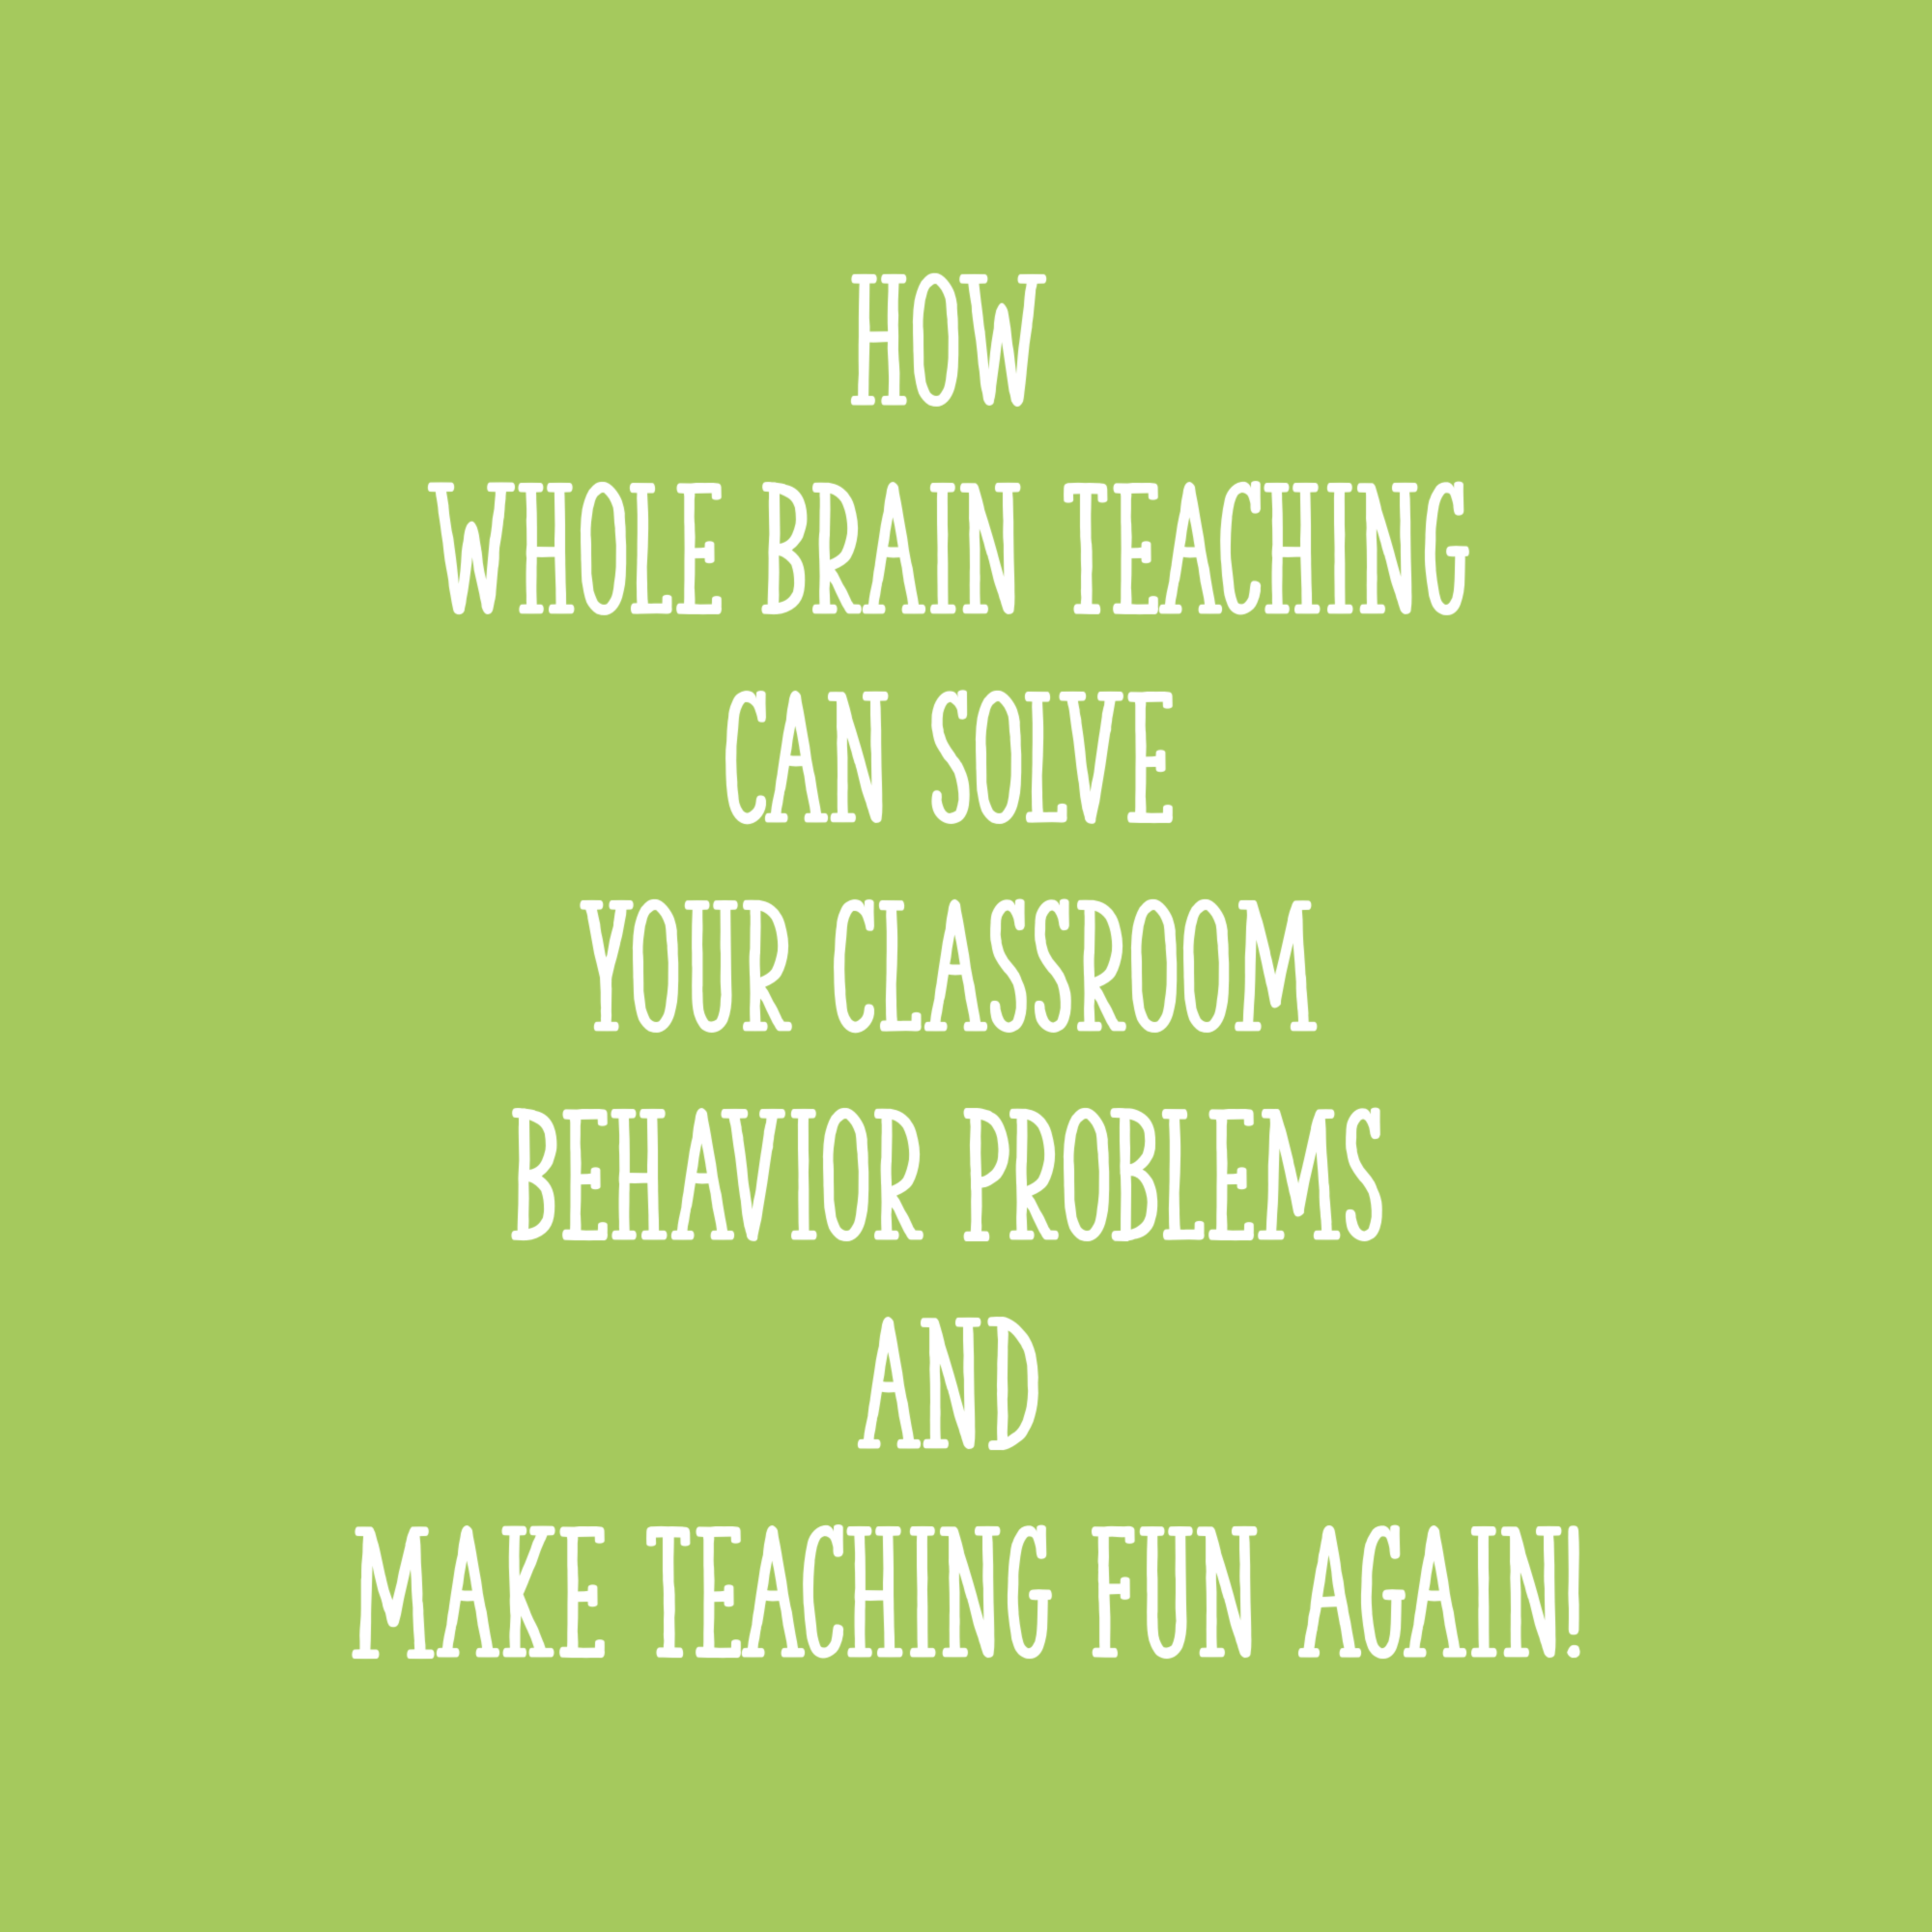 How Whole Brain Teaching Can Solve Your Classroom Behavior